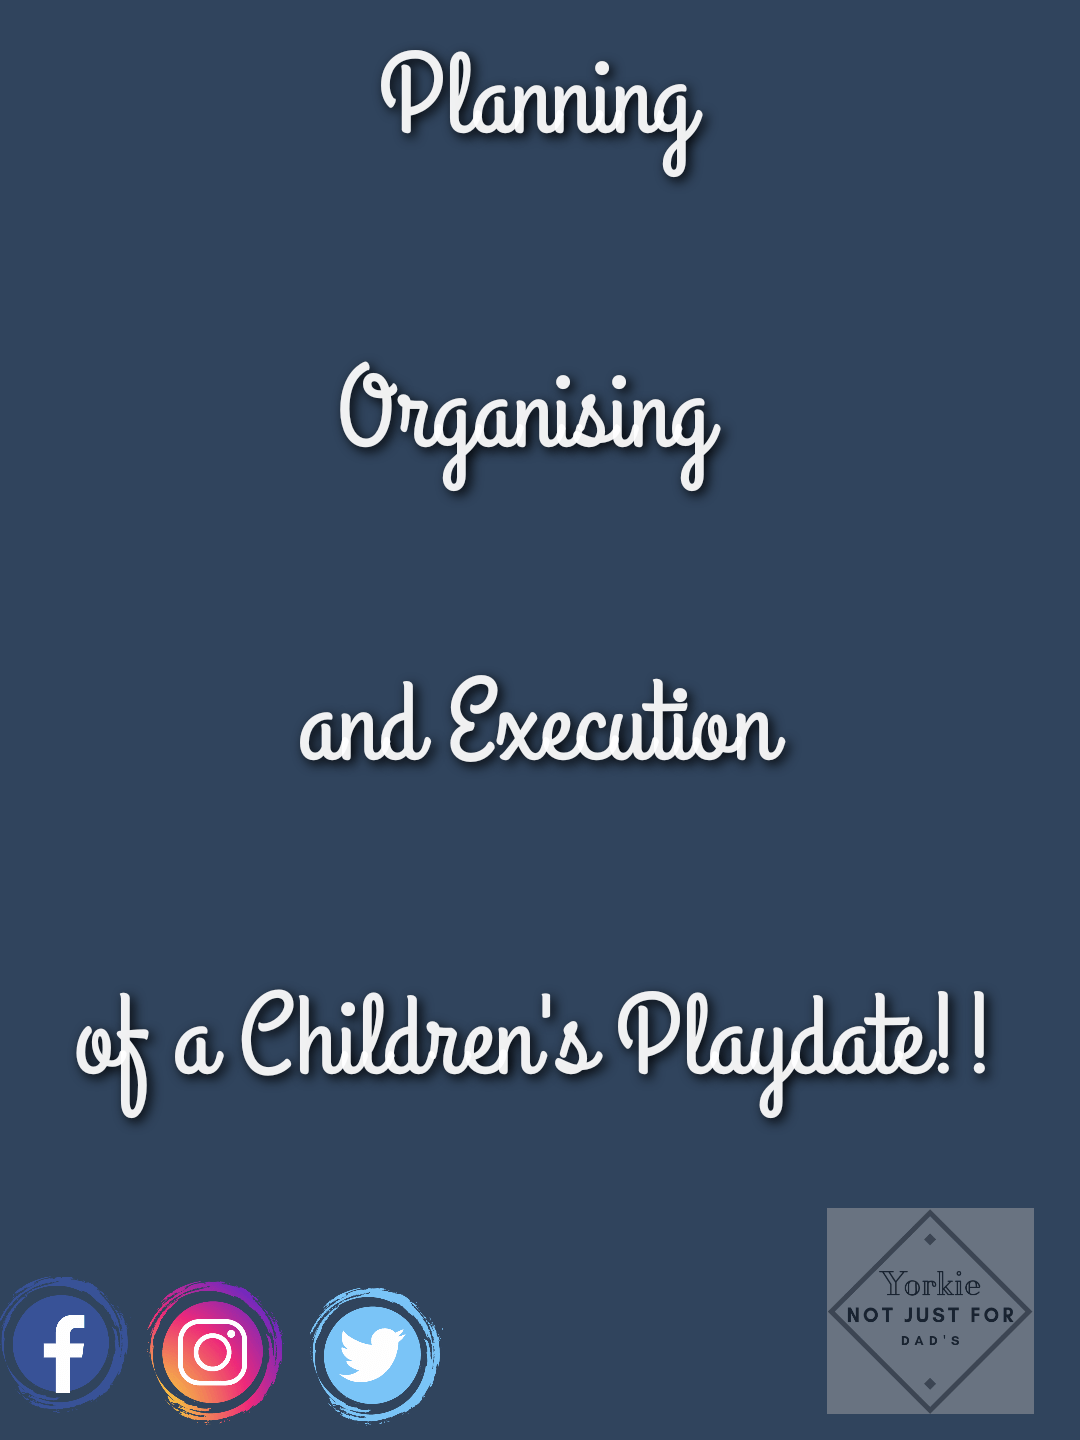 Featured image for the post organising and execution of a children's playdate